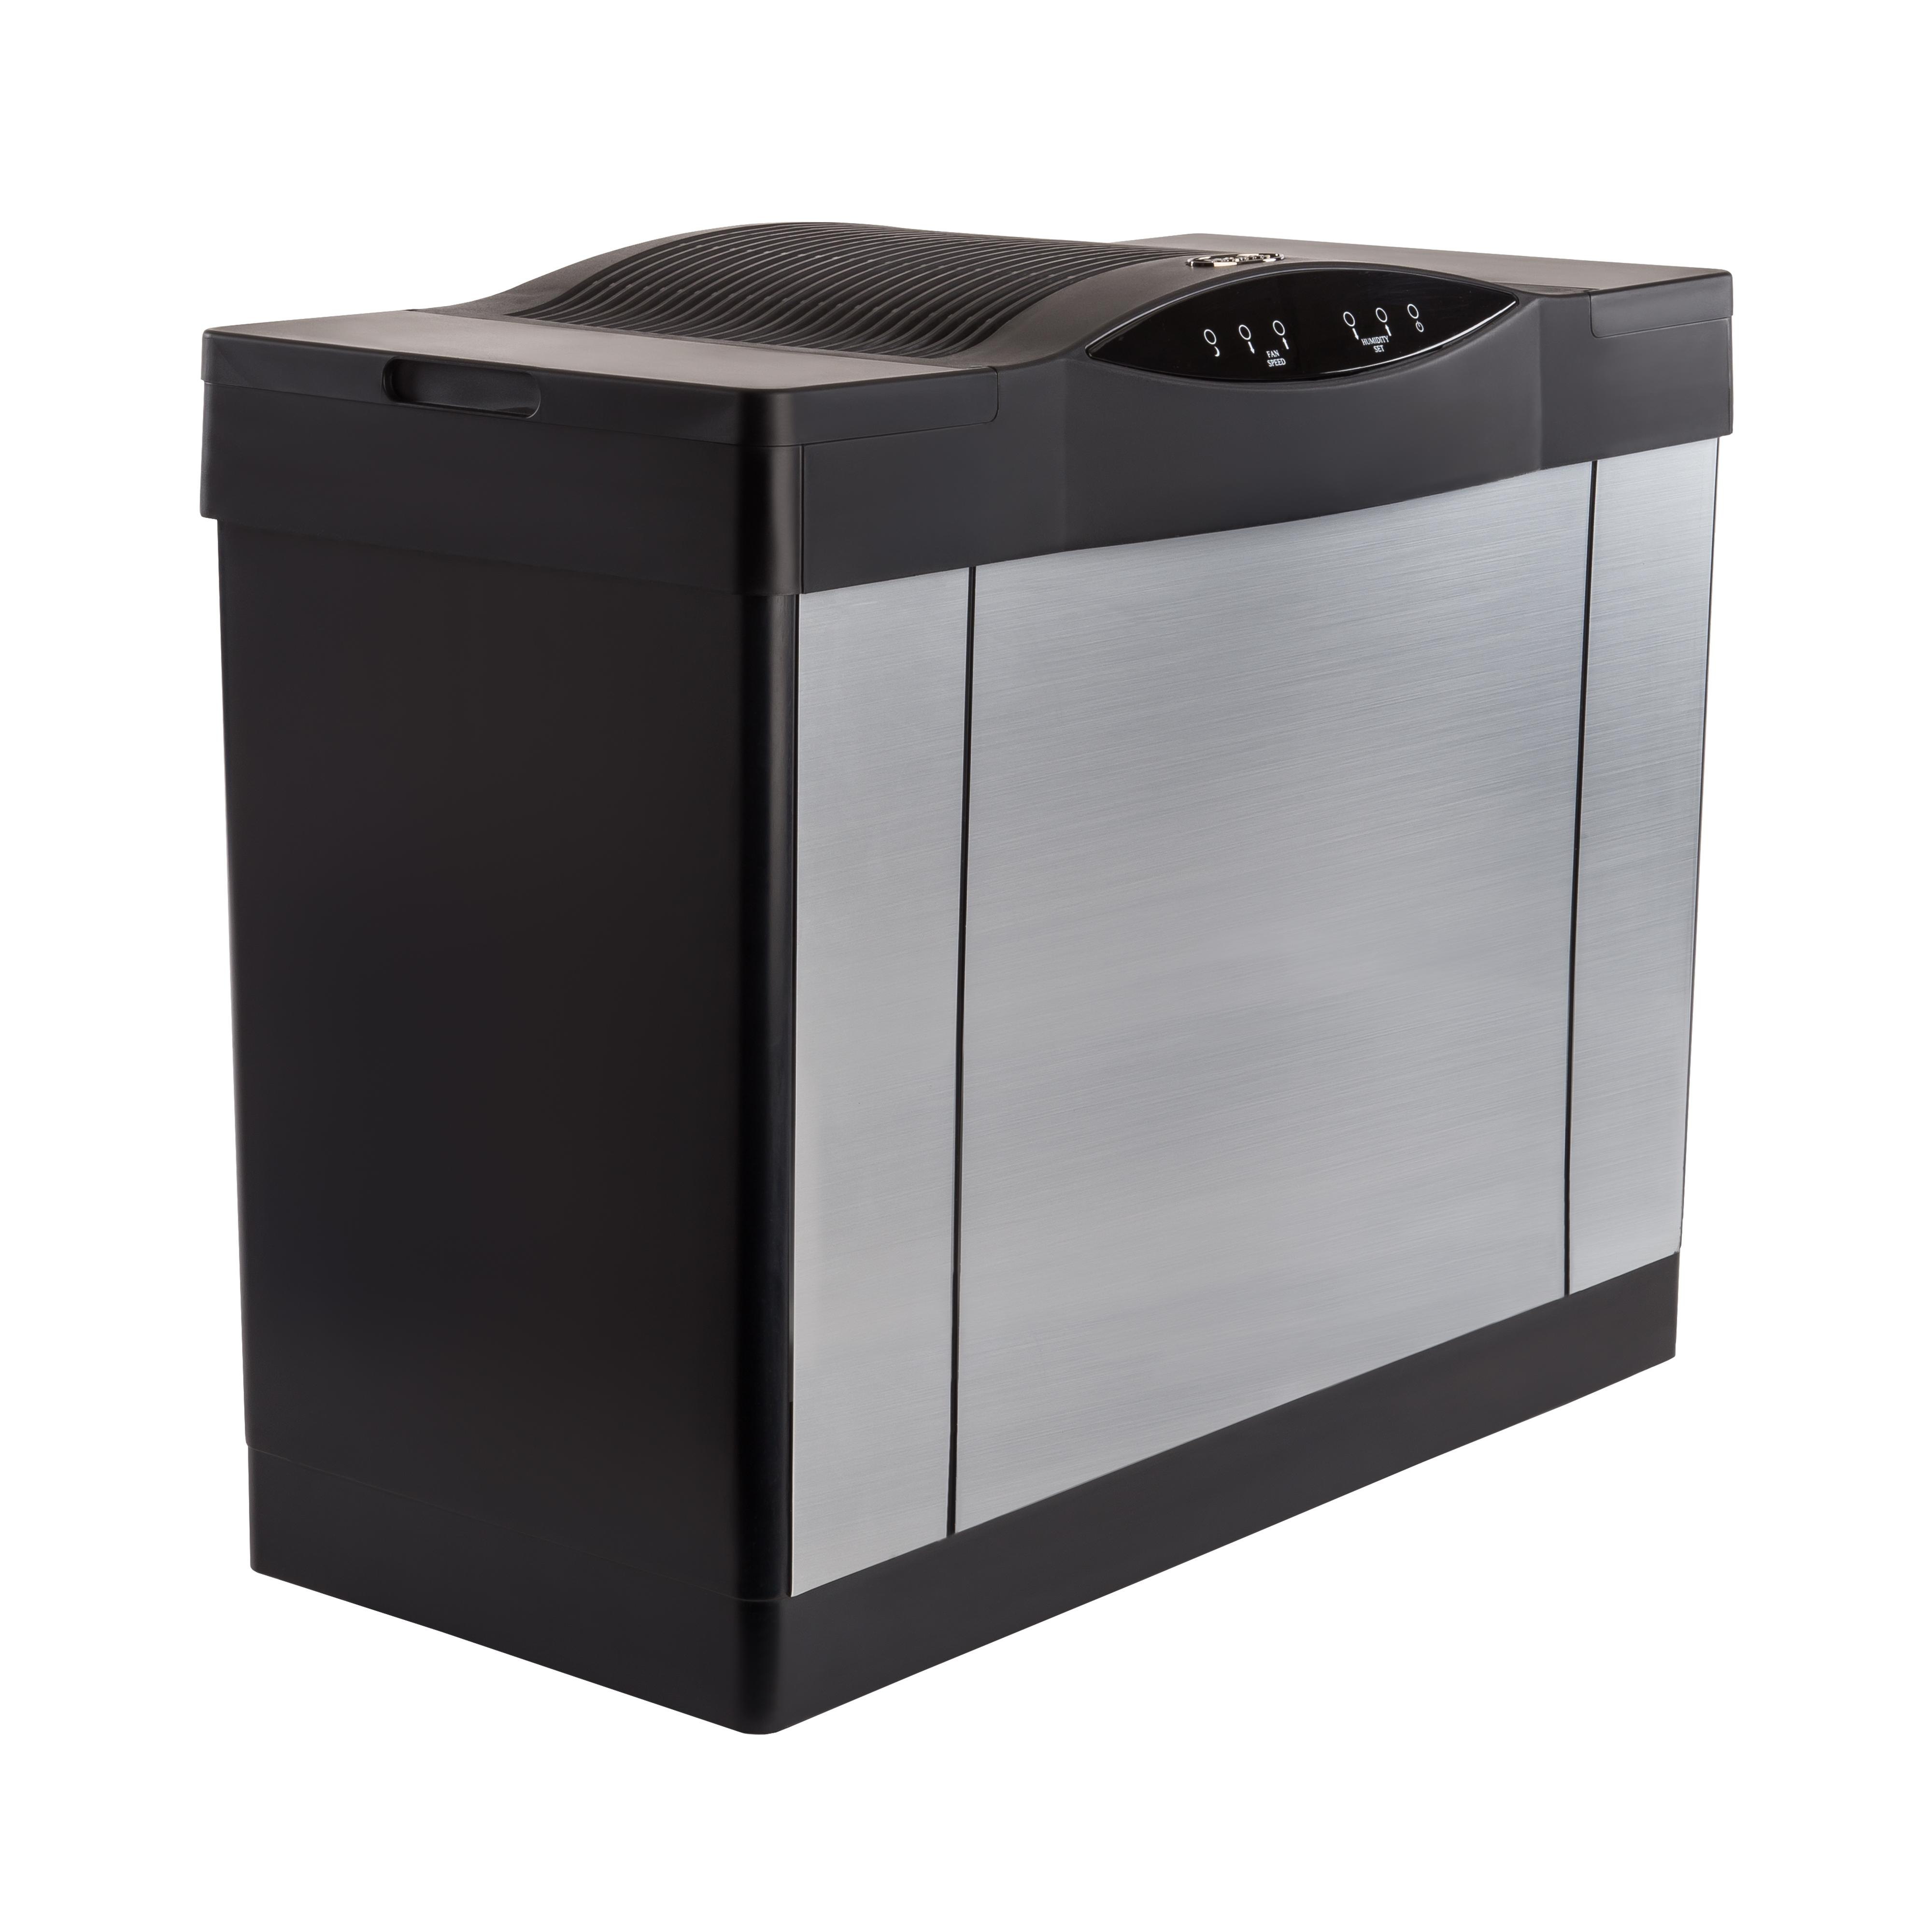 console evaporative humidifier 4dts900 this evaporative humidifier  #6D615E